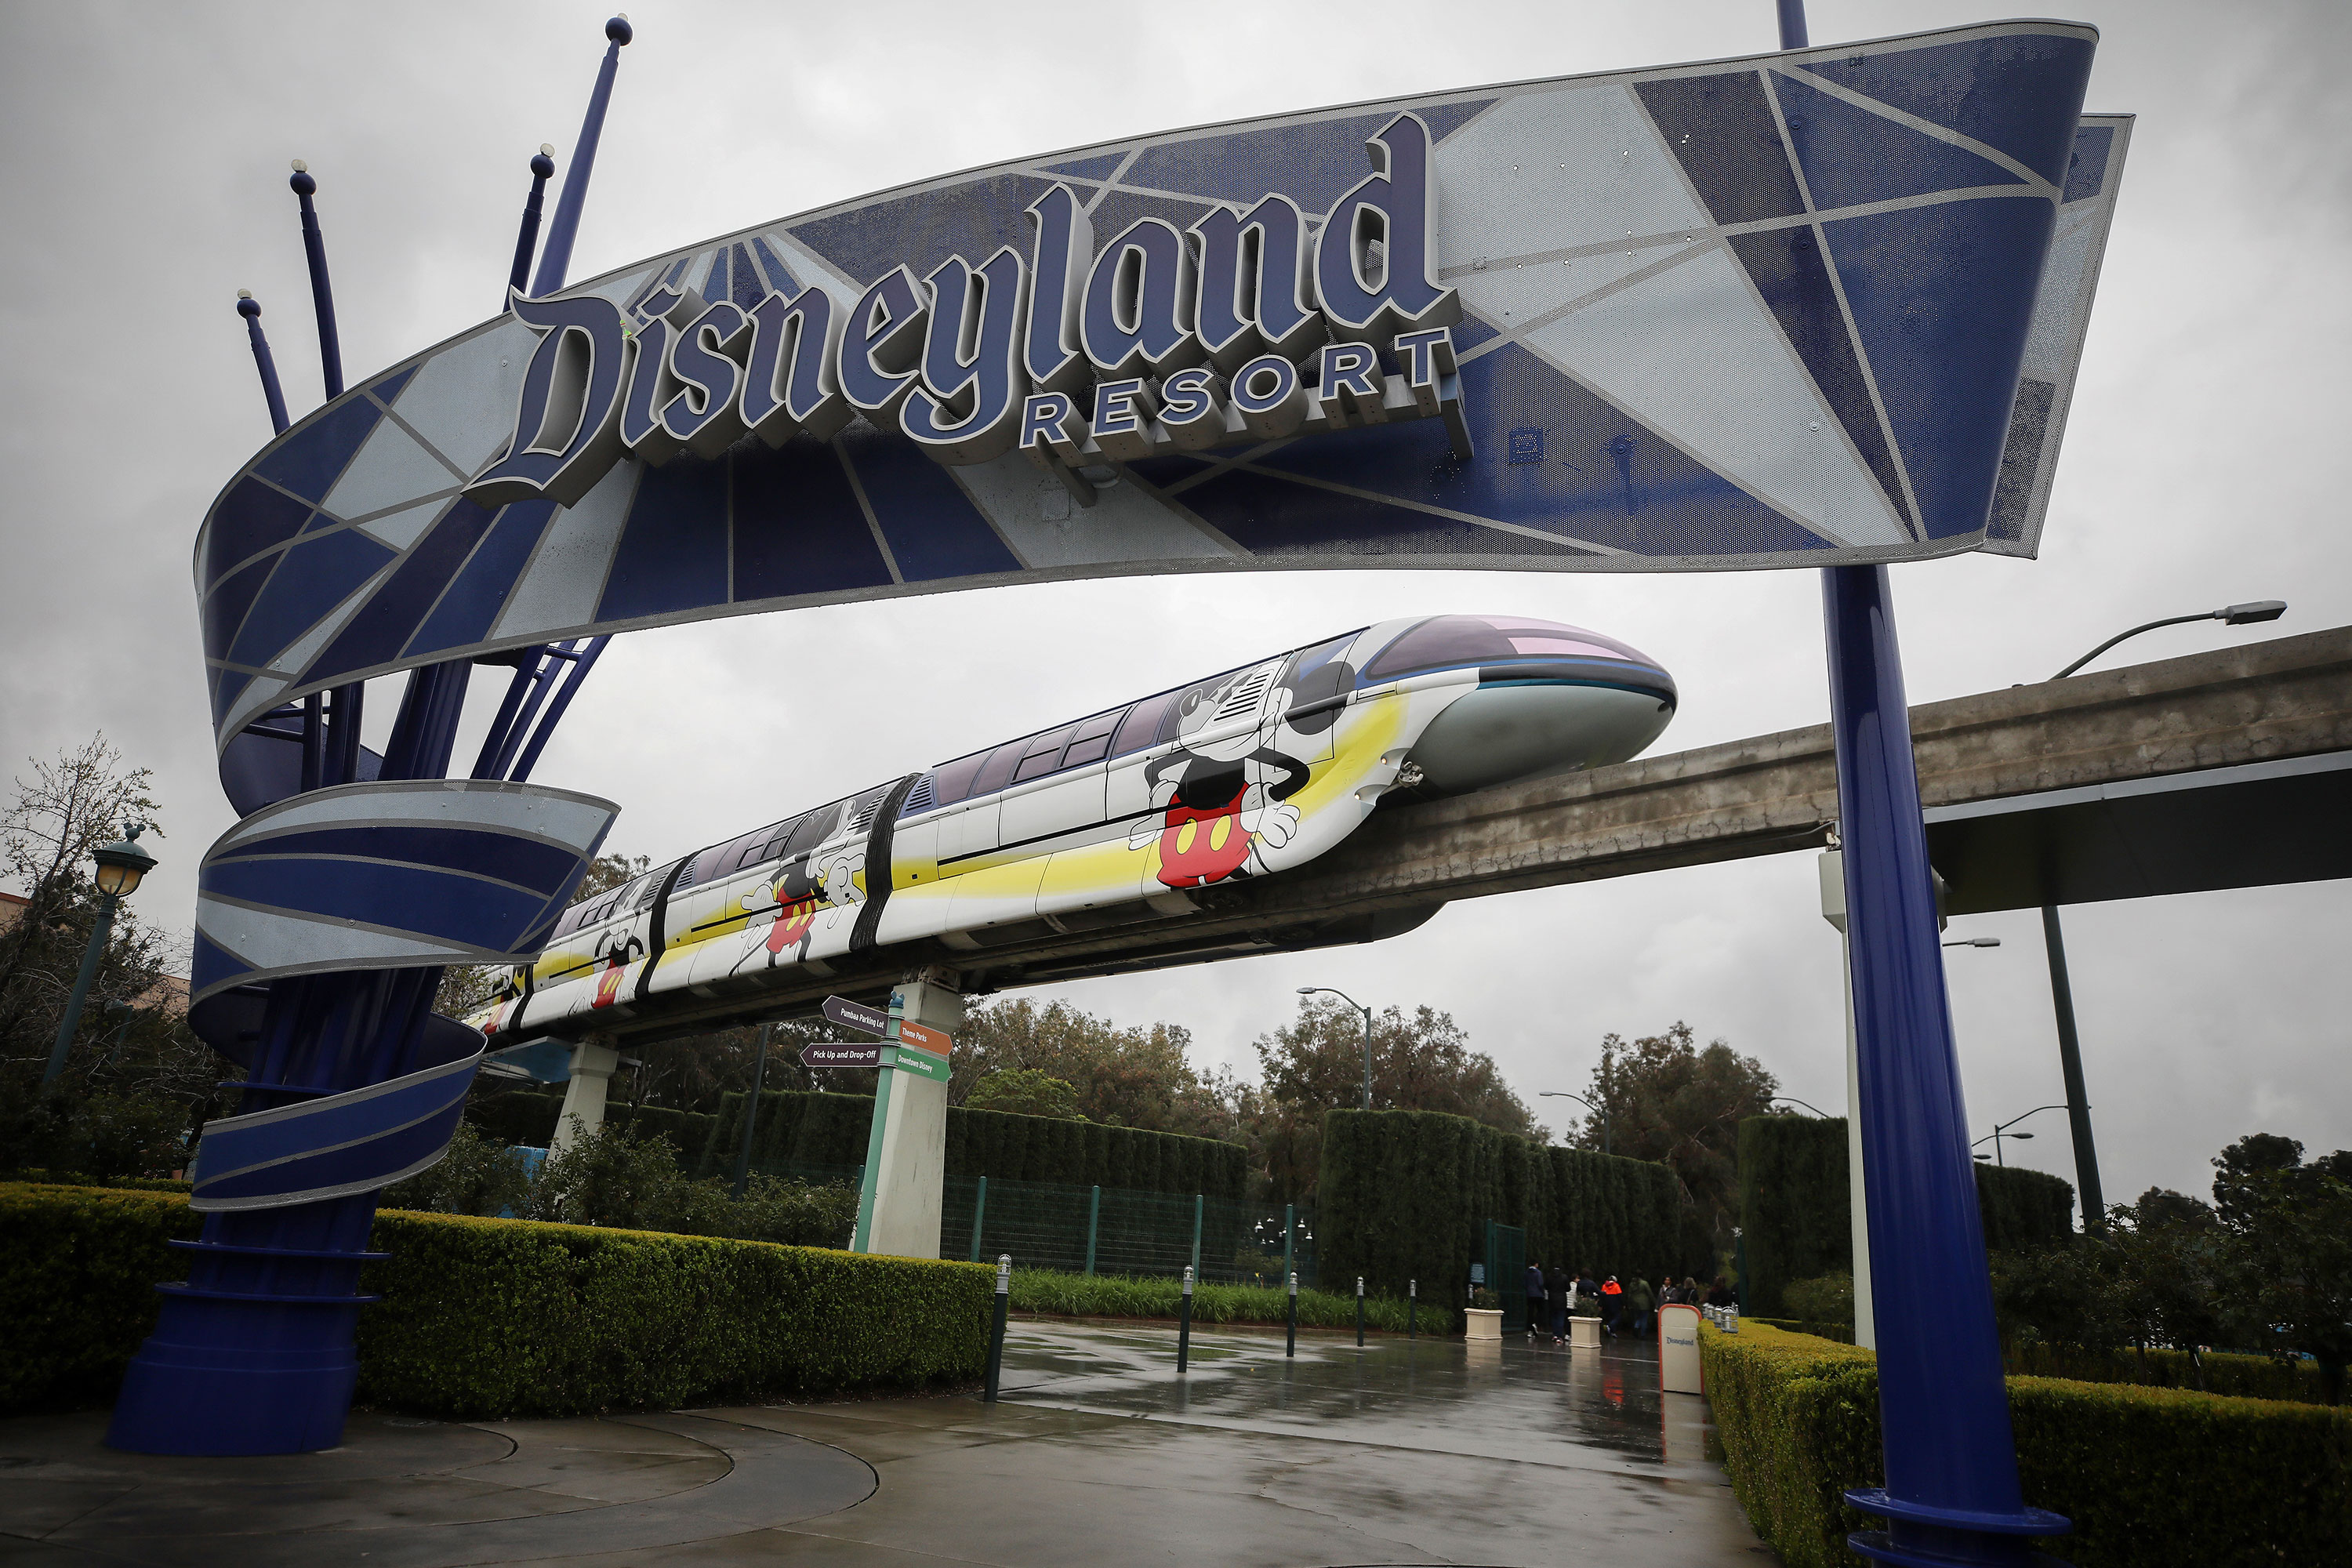 The monorail passes an entrance gate to Disneyland in Anaheim, California, on March 13.